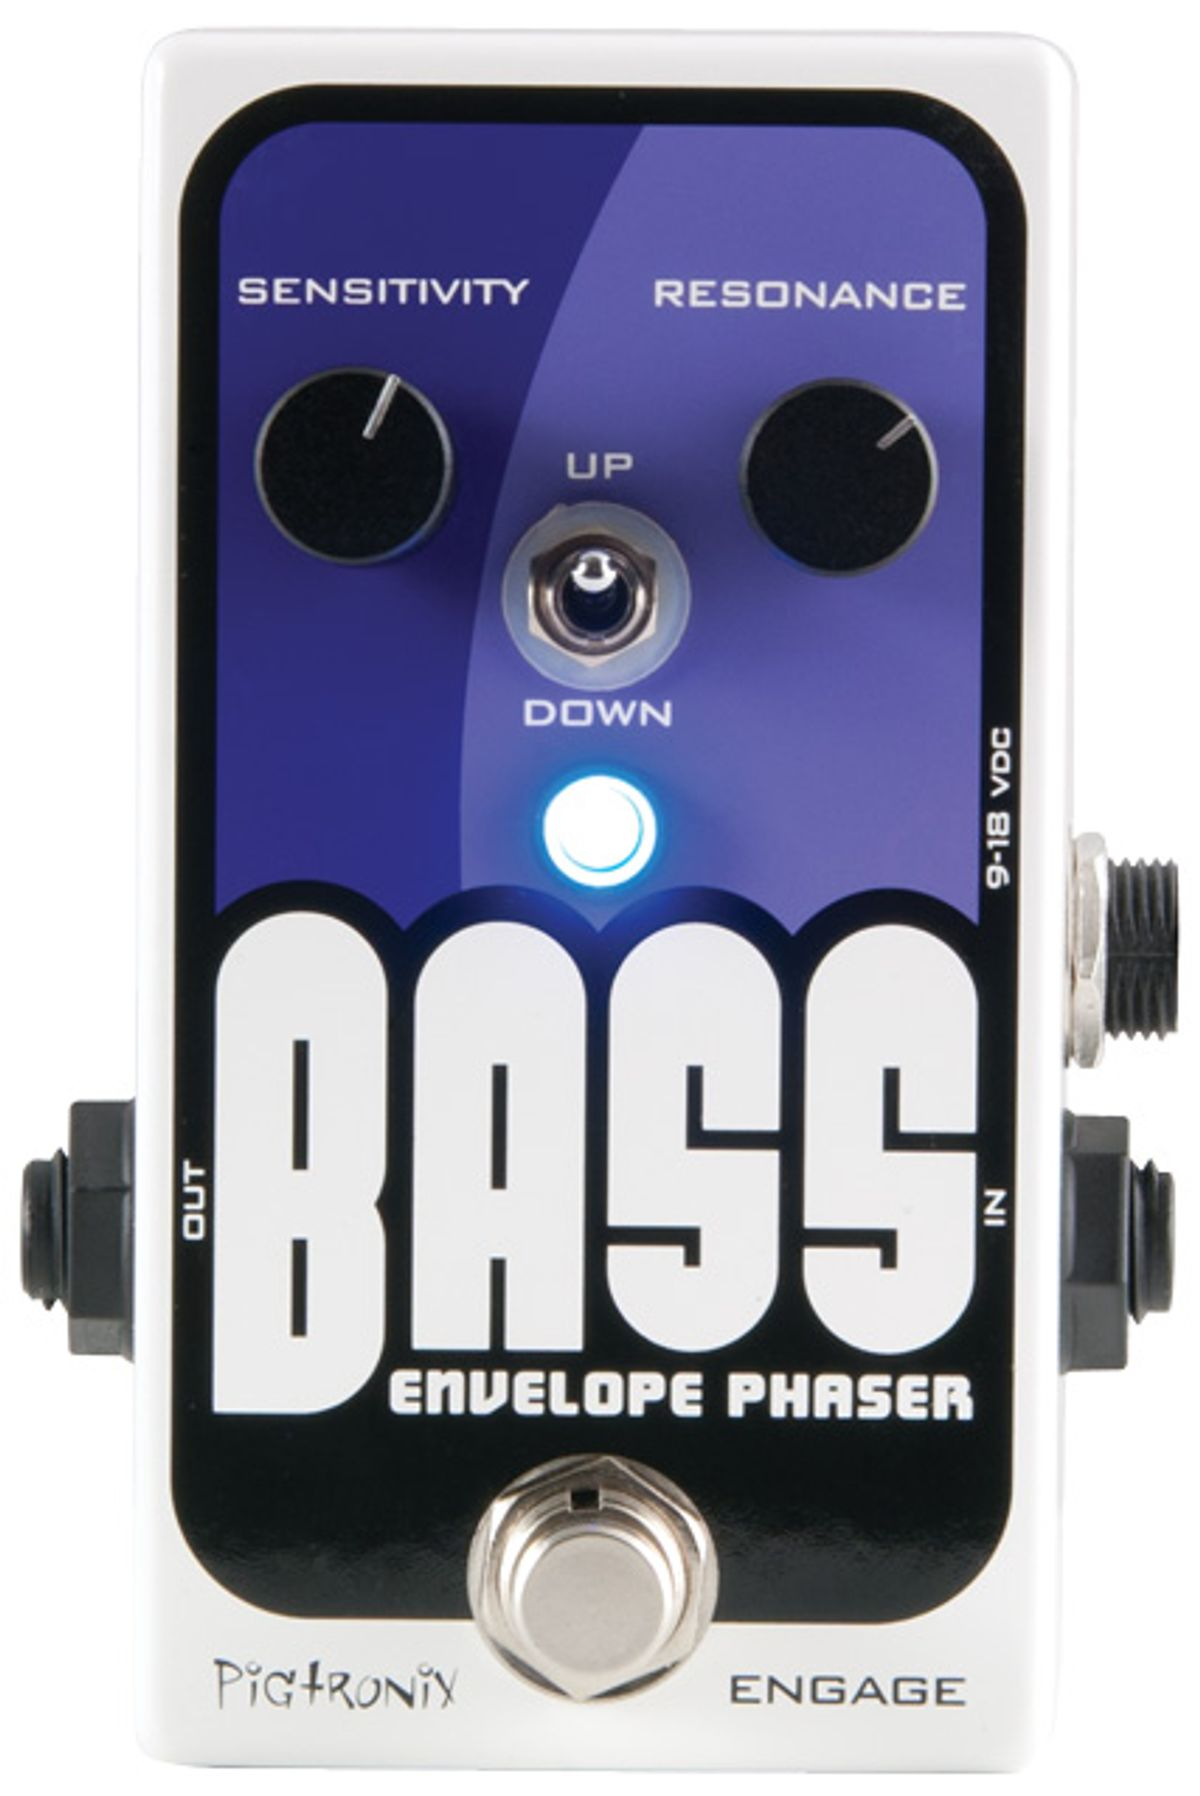 Pigtronix Bass Envelope Phaser Review